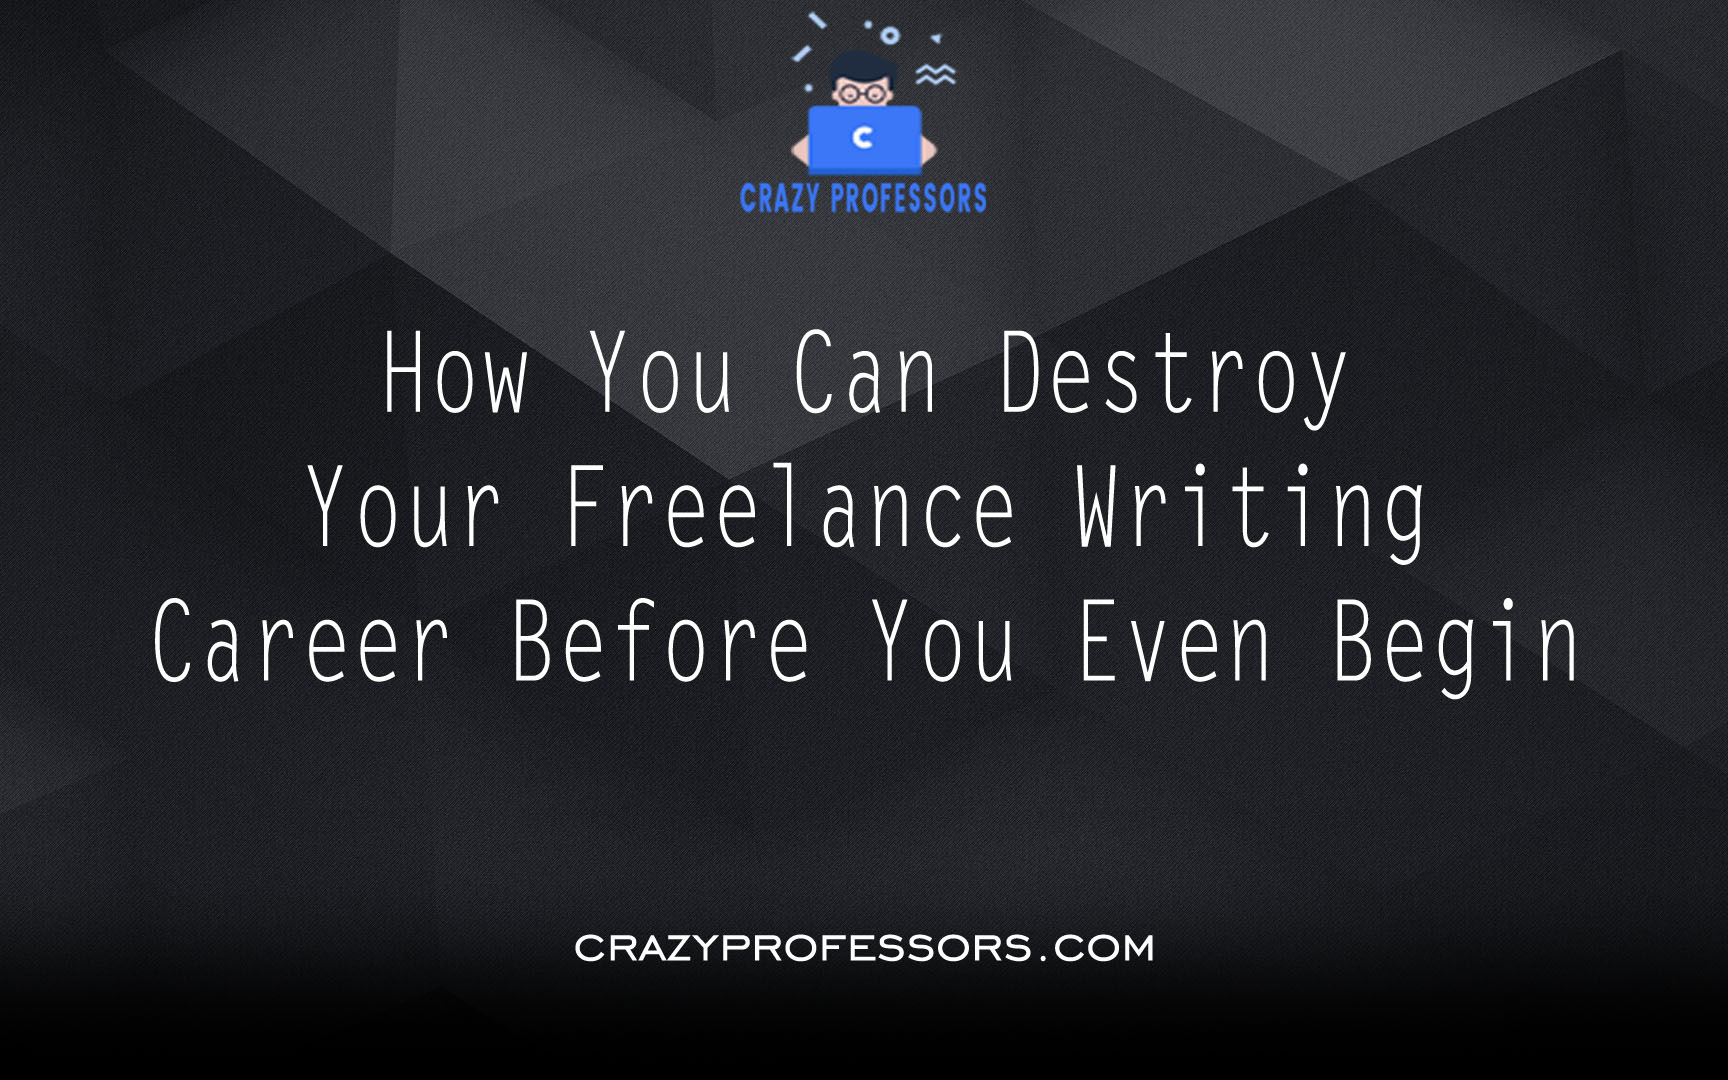 Retaining Your Clients as a Freelance Writer